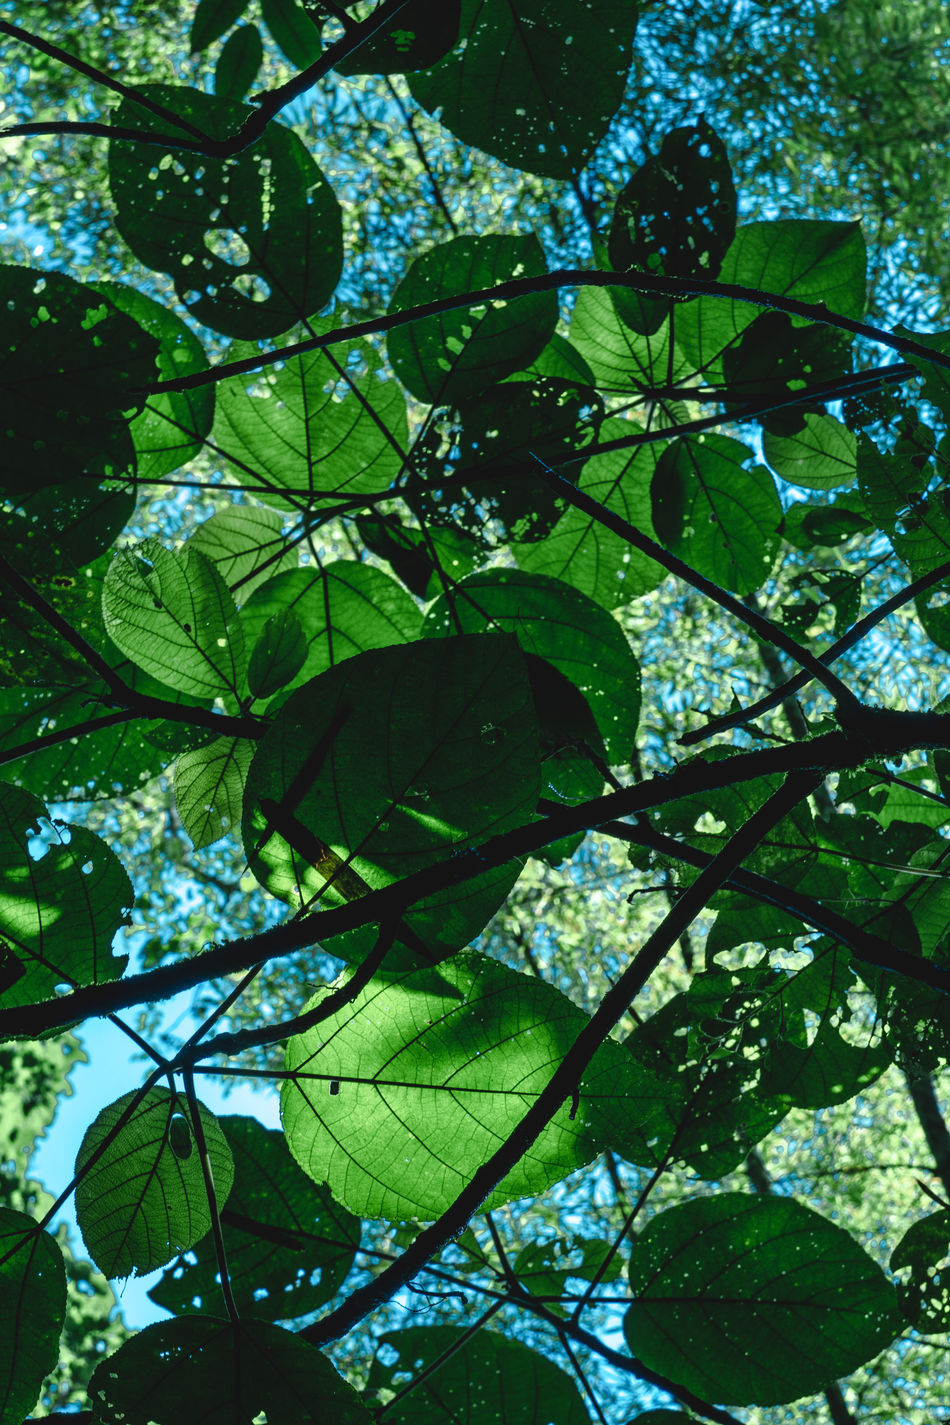 Backgrounds Beauty In Nature Branch Day Fine Art Photography Forest Freshness Green Color Growth Jungle Leaf Low Angle View Mexico Nature Nature Nature Photography Nature_collection No People Outdoors Patterns In Nature San Luis Potosí Tree Xilitla Art Is Everywhere